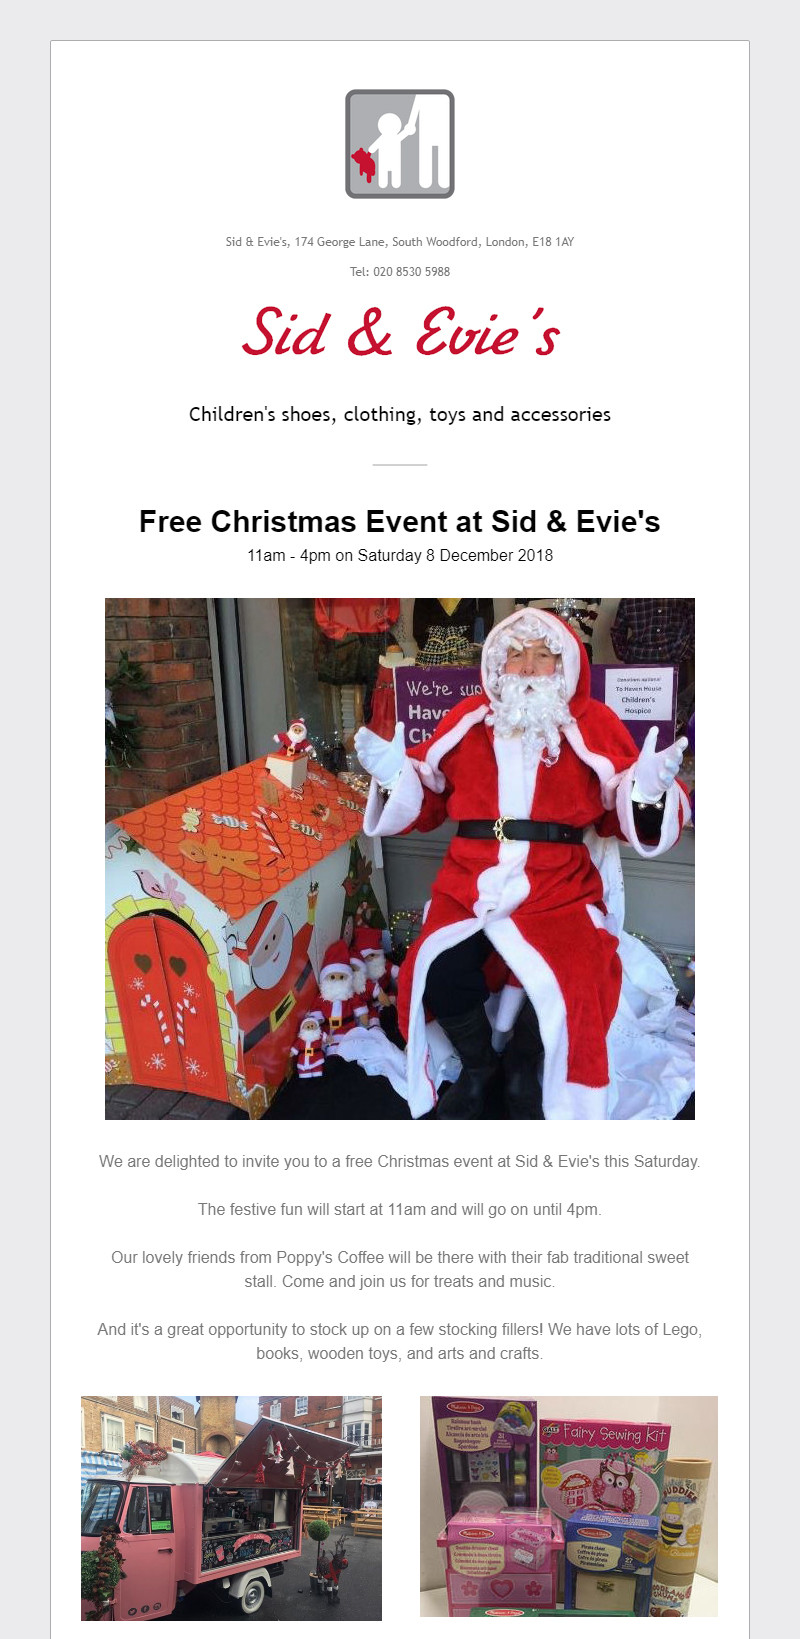 Sid & Evie's Newsletter